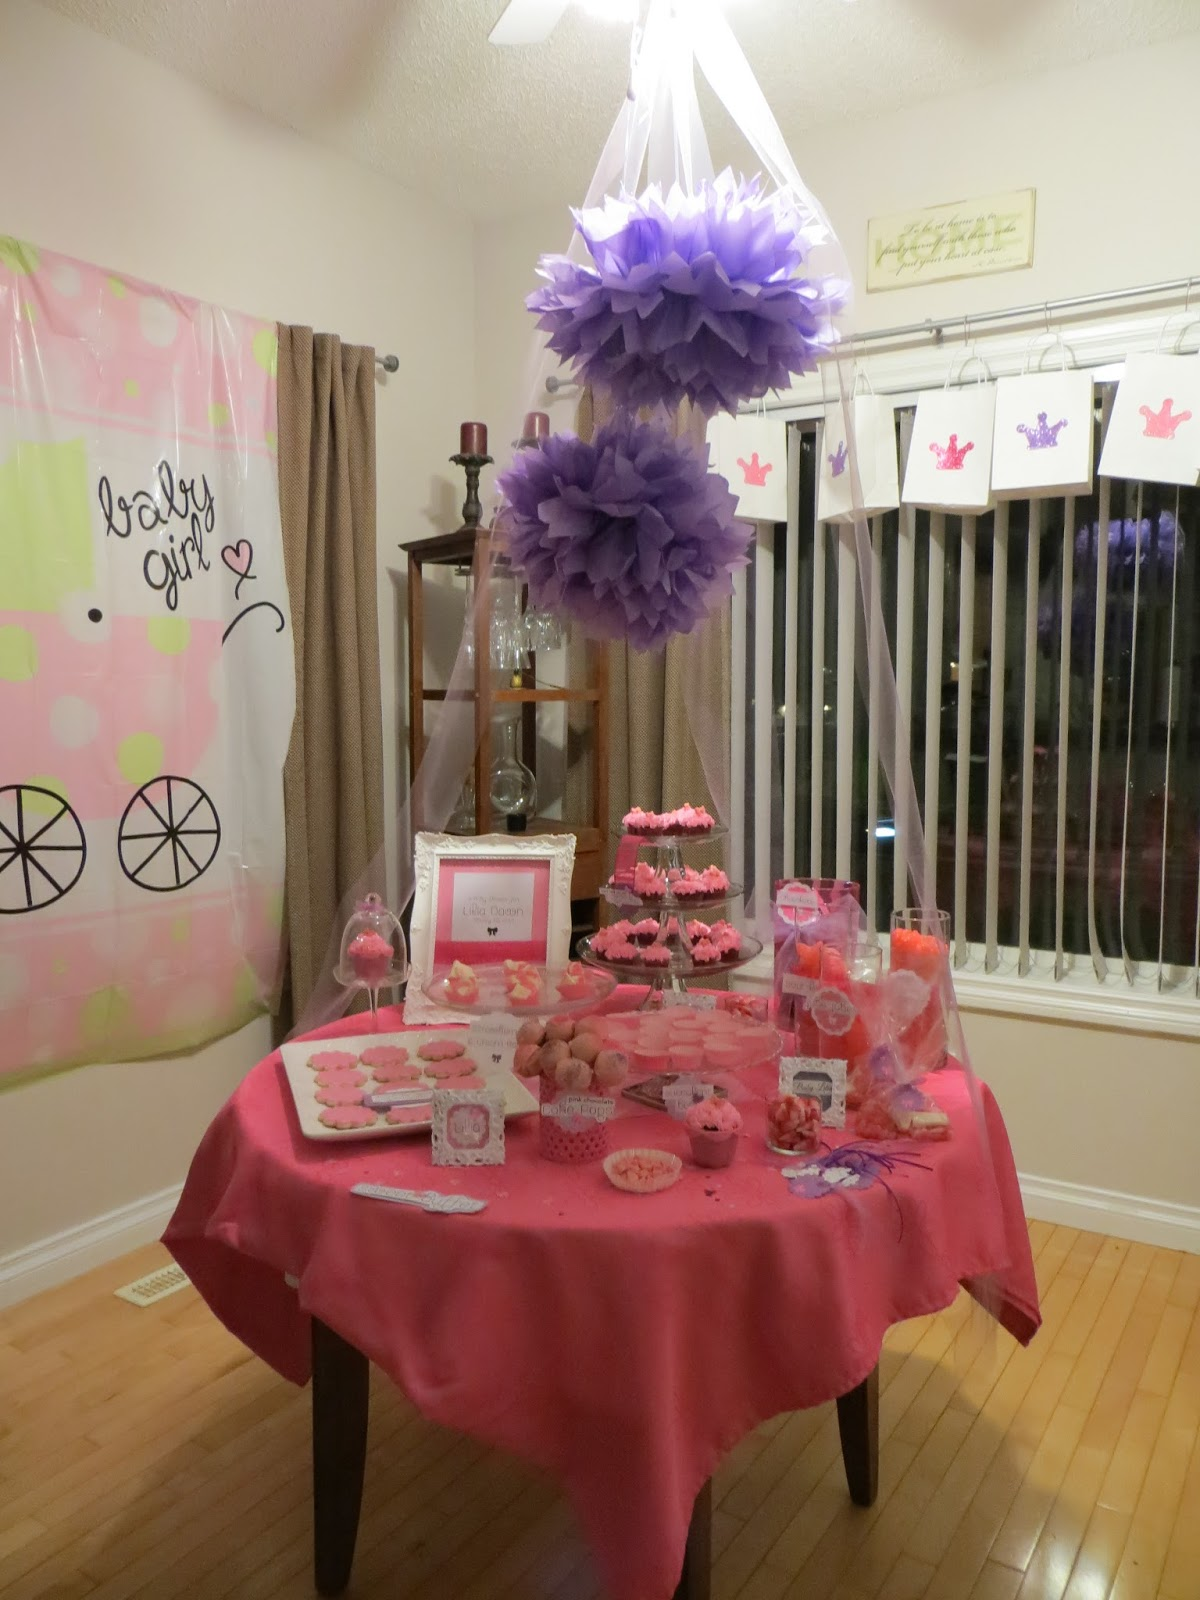 we did a very special pink and purple baby shower for juli and her